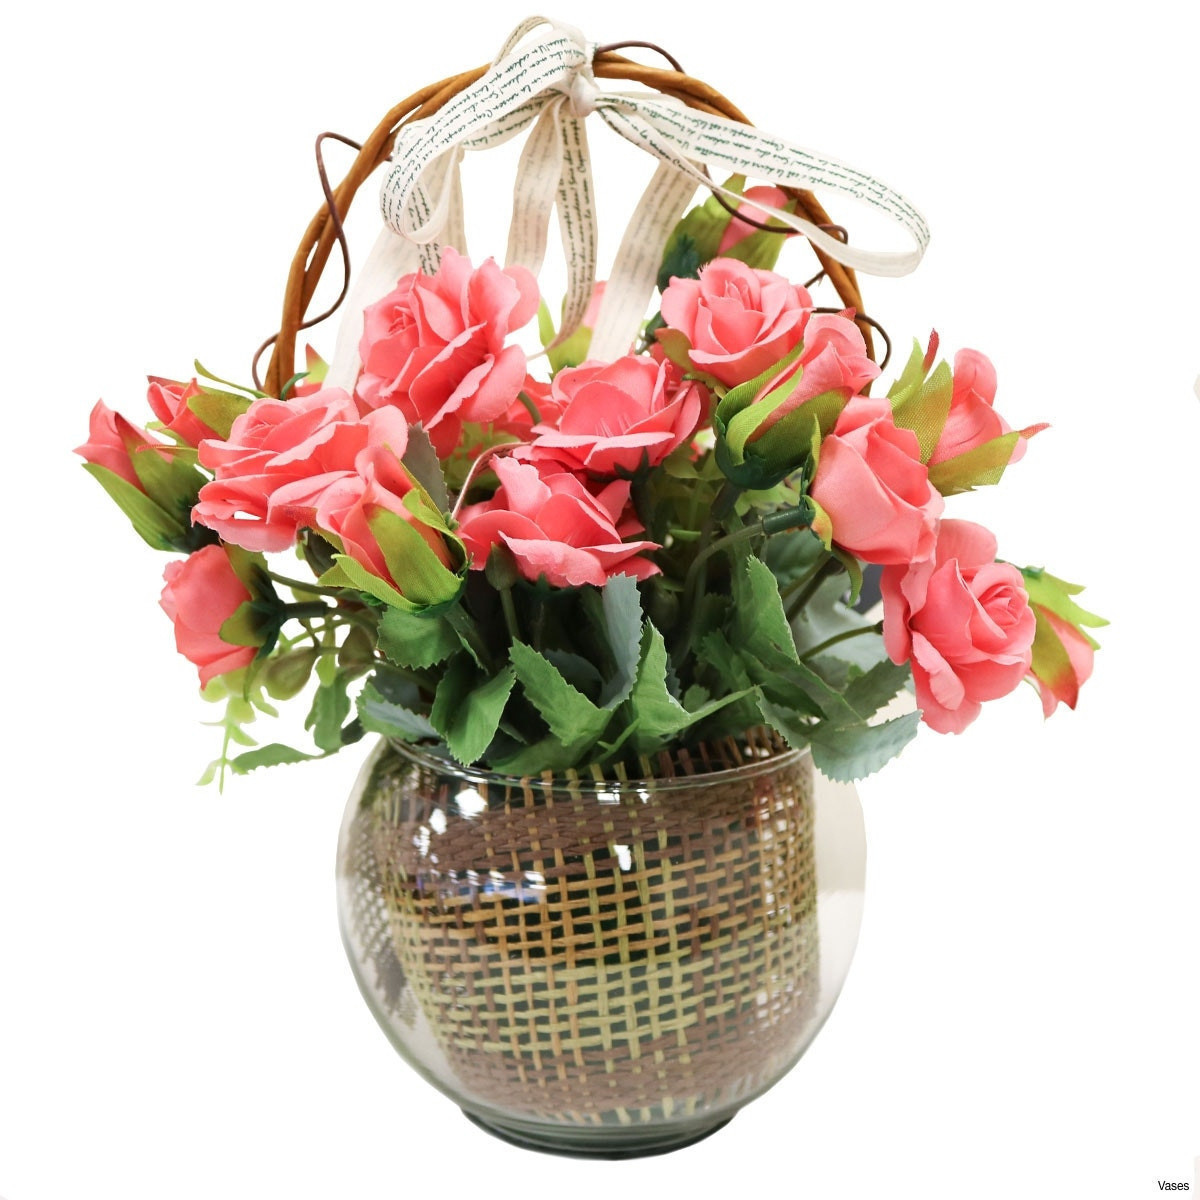 Artificial Flower Arrangements In Glass Vases Of Best Of Artificial Flower Arrangements In Vases Home Decor Accents In Best Of Artificial Flower Arrangements In Vases